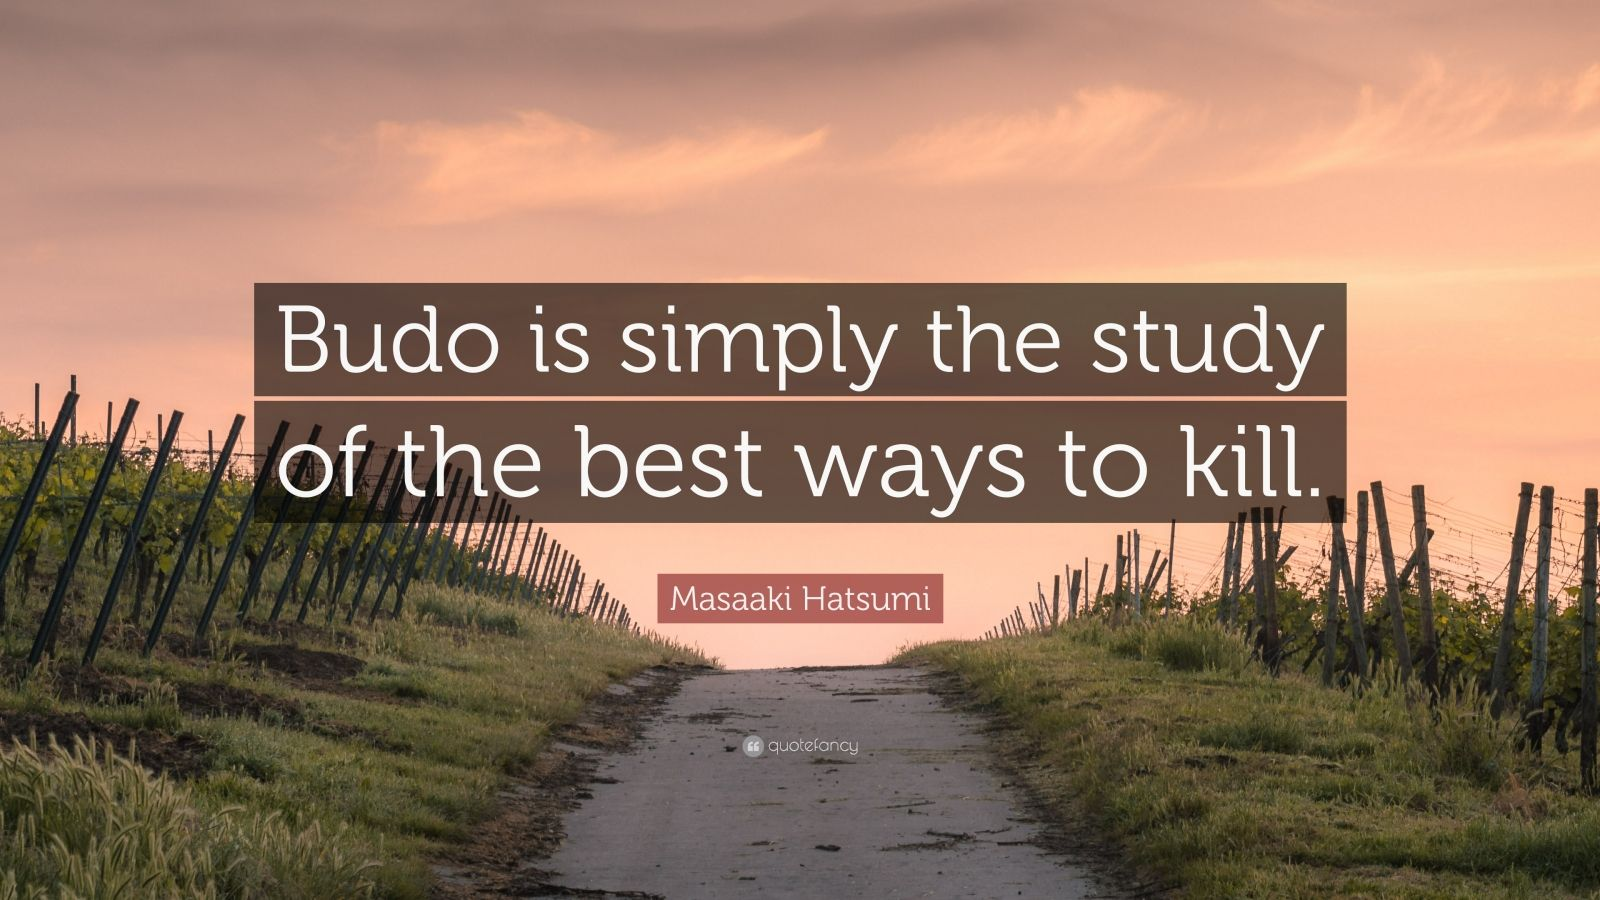 """Masaaki Hatsumi Quote: """"Budo is simply the study of the best ways to kill."""""""